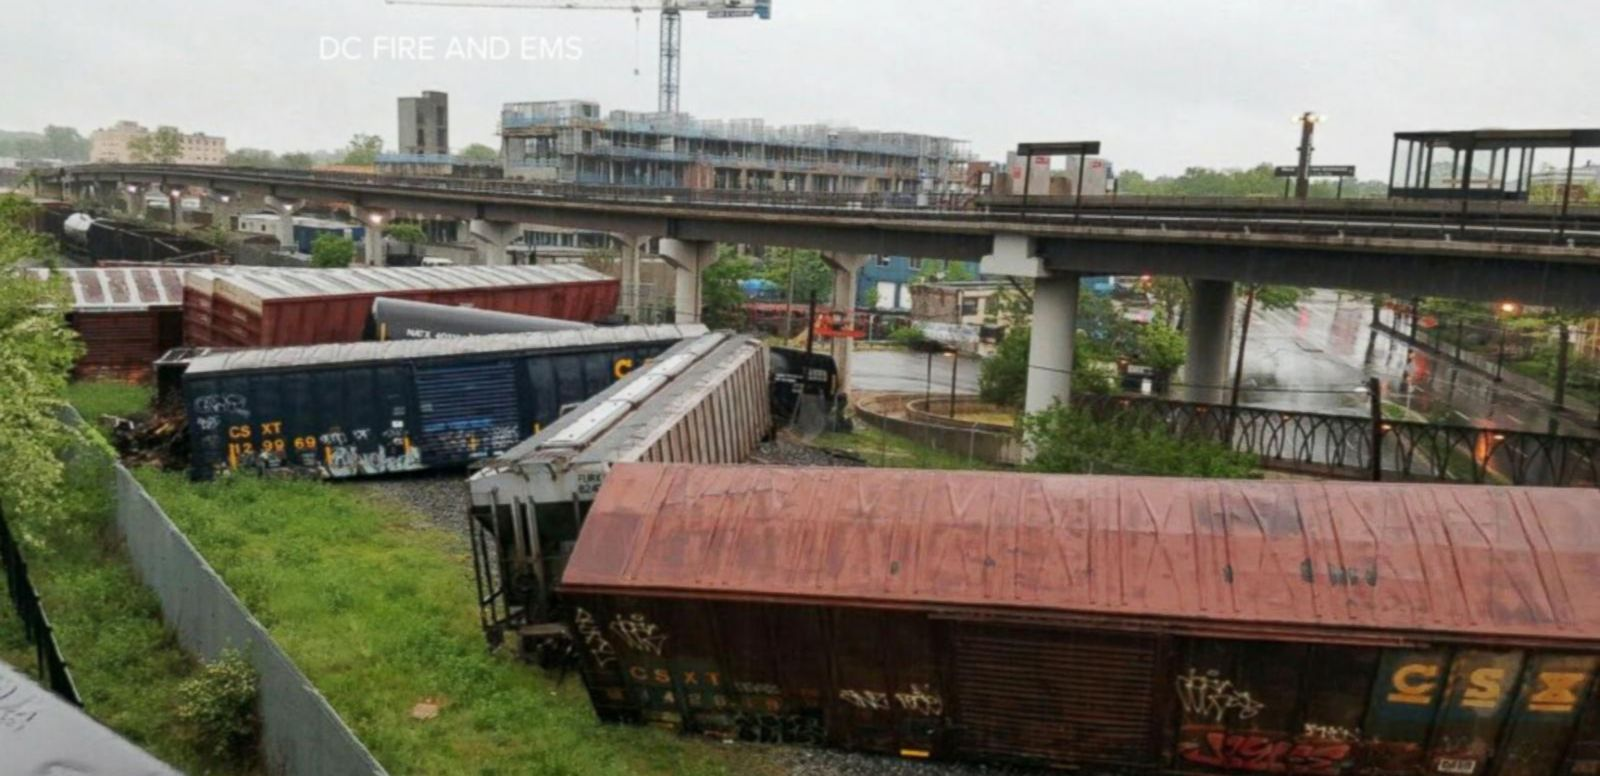 VIDEO: Toxic Chemicals Spilled After a Train Crashes Outside the Nation's Capital